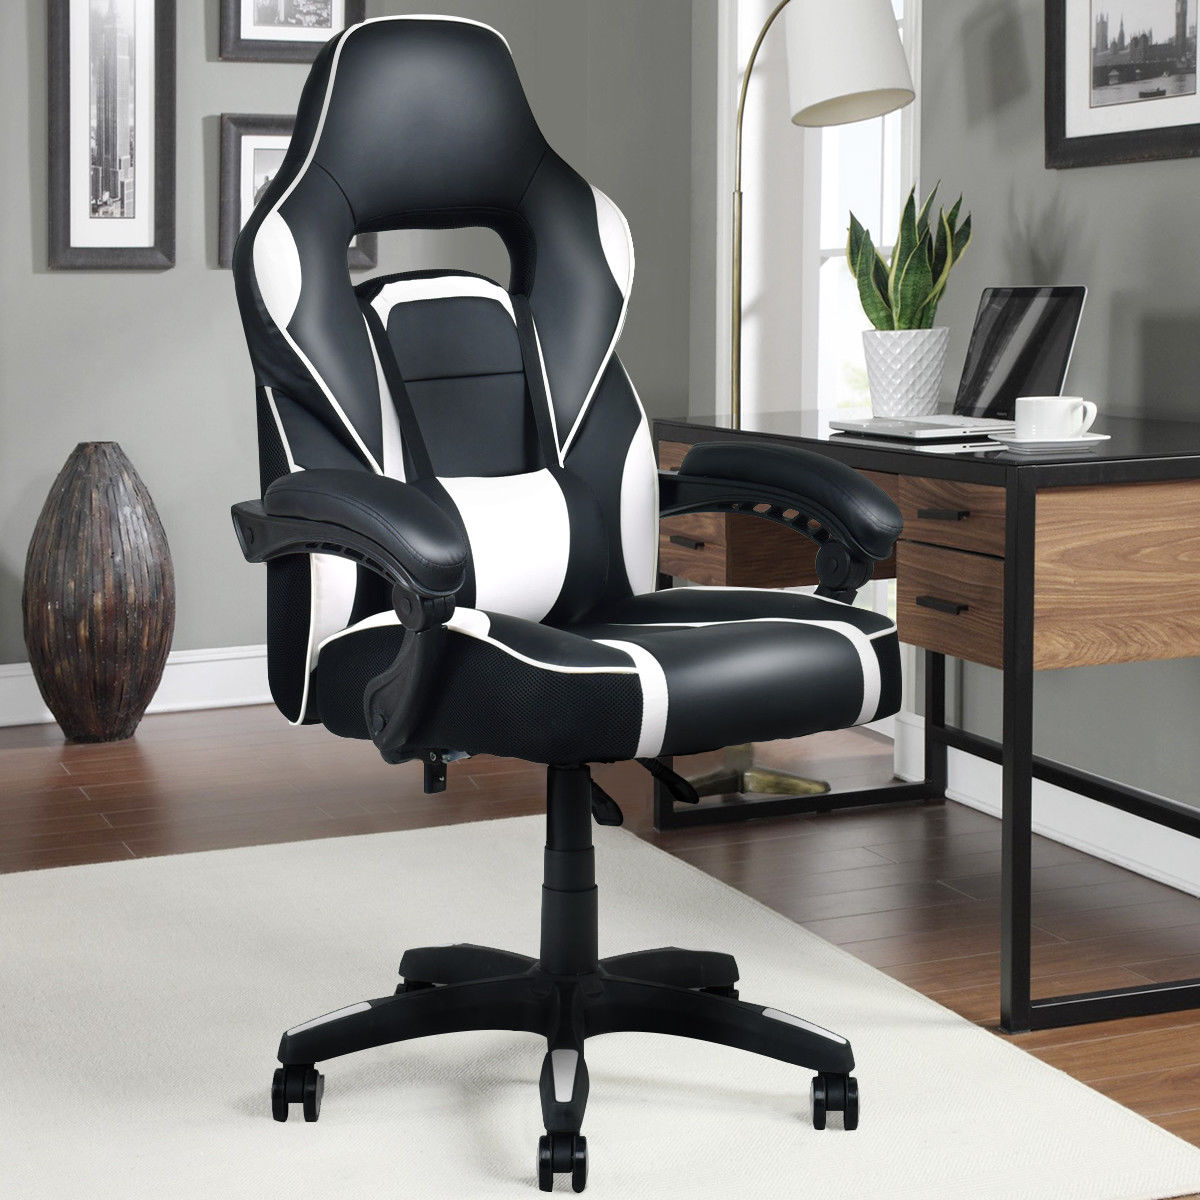 big technical merax chairs for black chair reviewed updated definitive reclining guide leather tall executive recliner top office napping